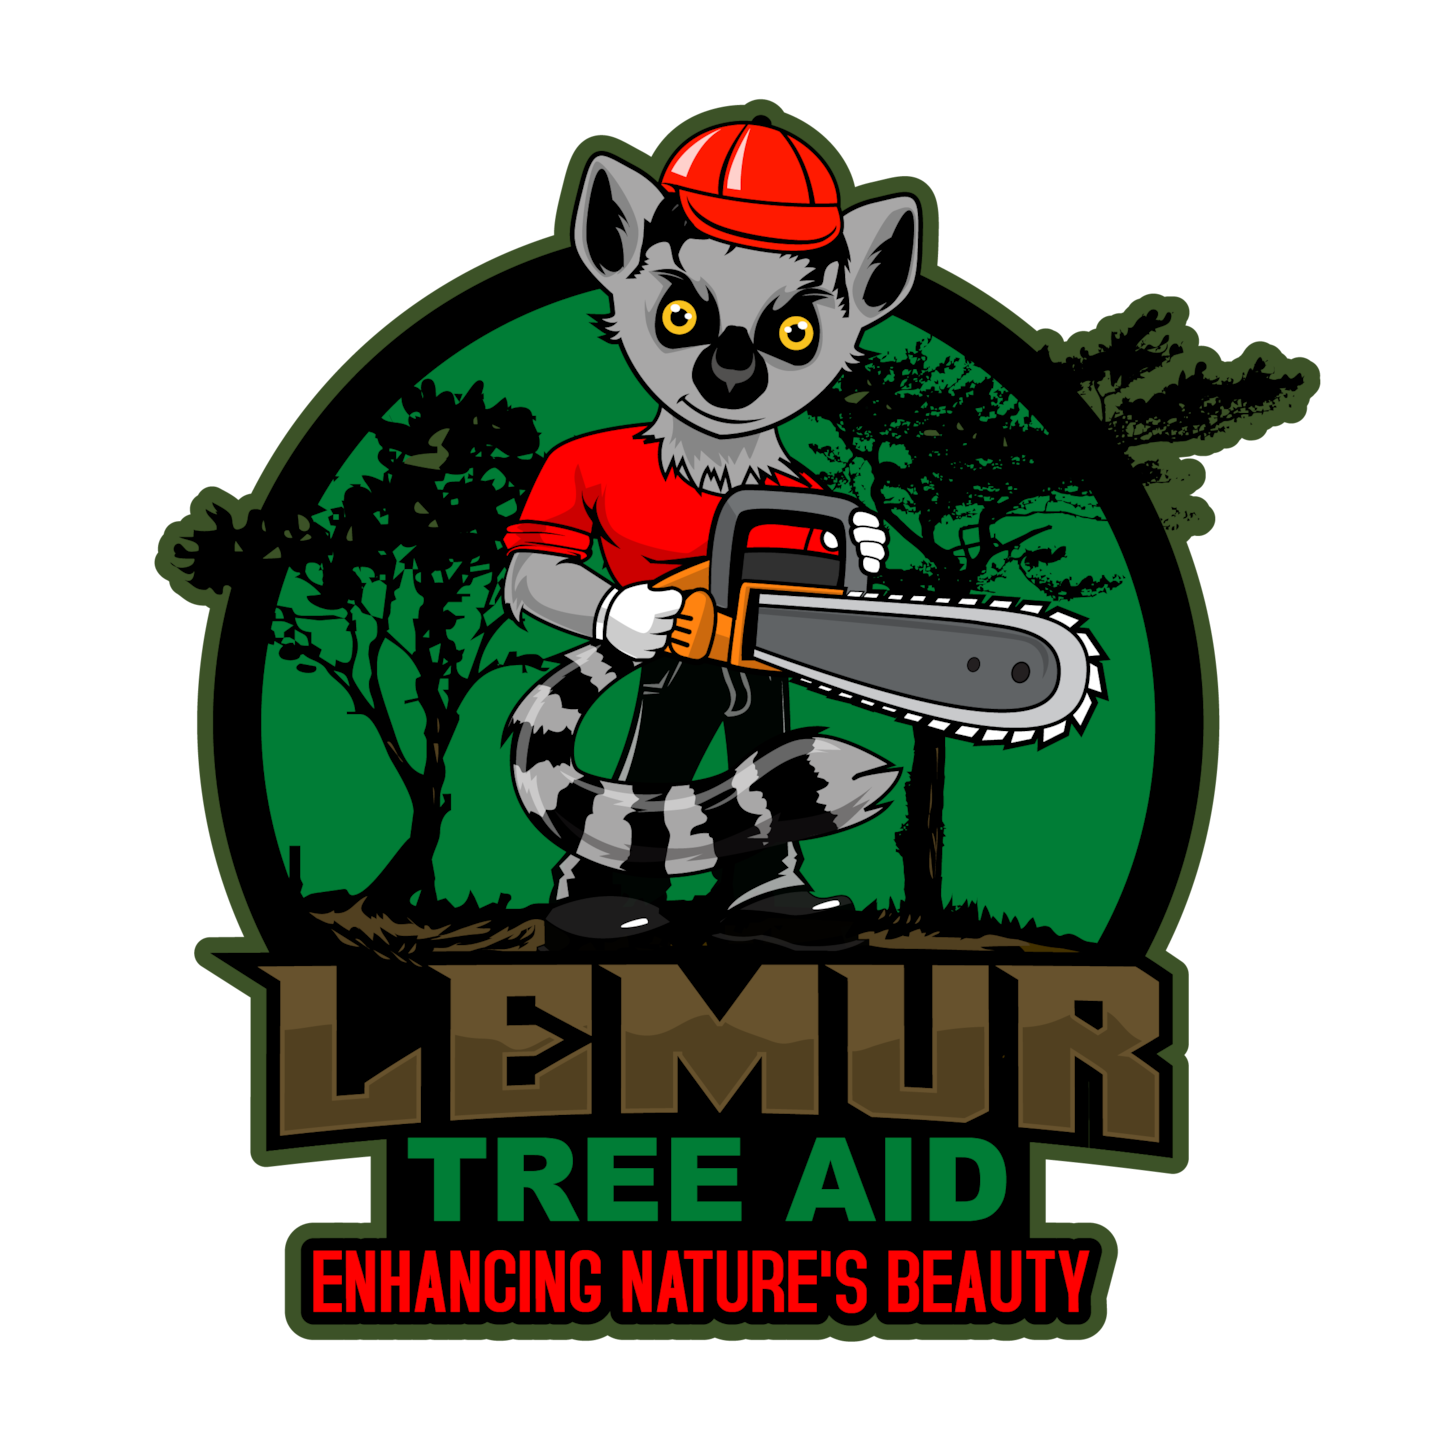 Lemur Tree Aid